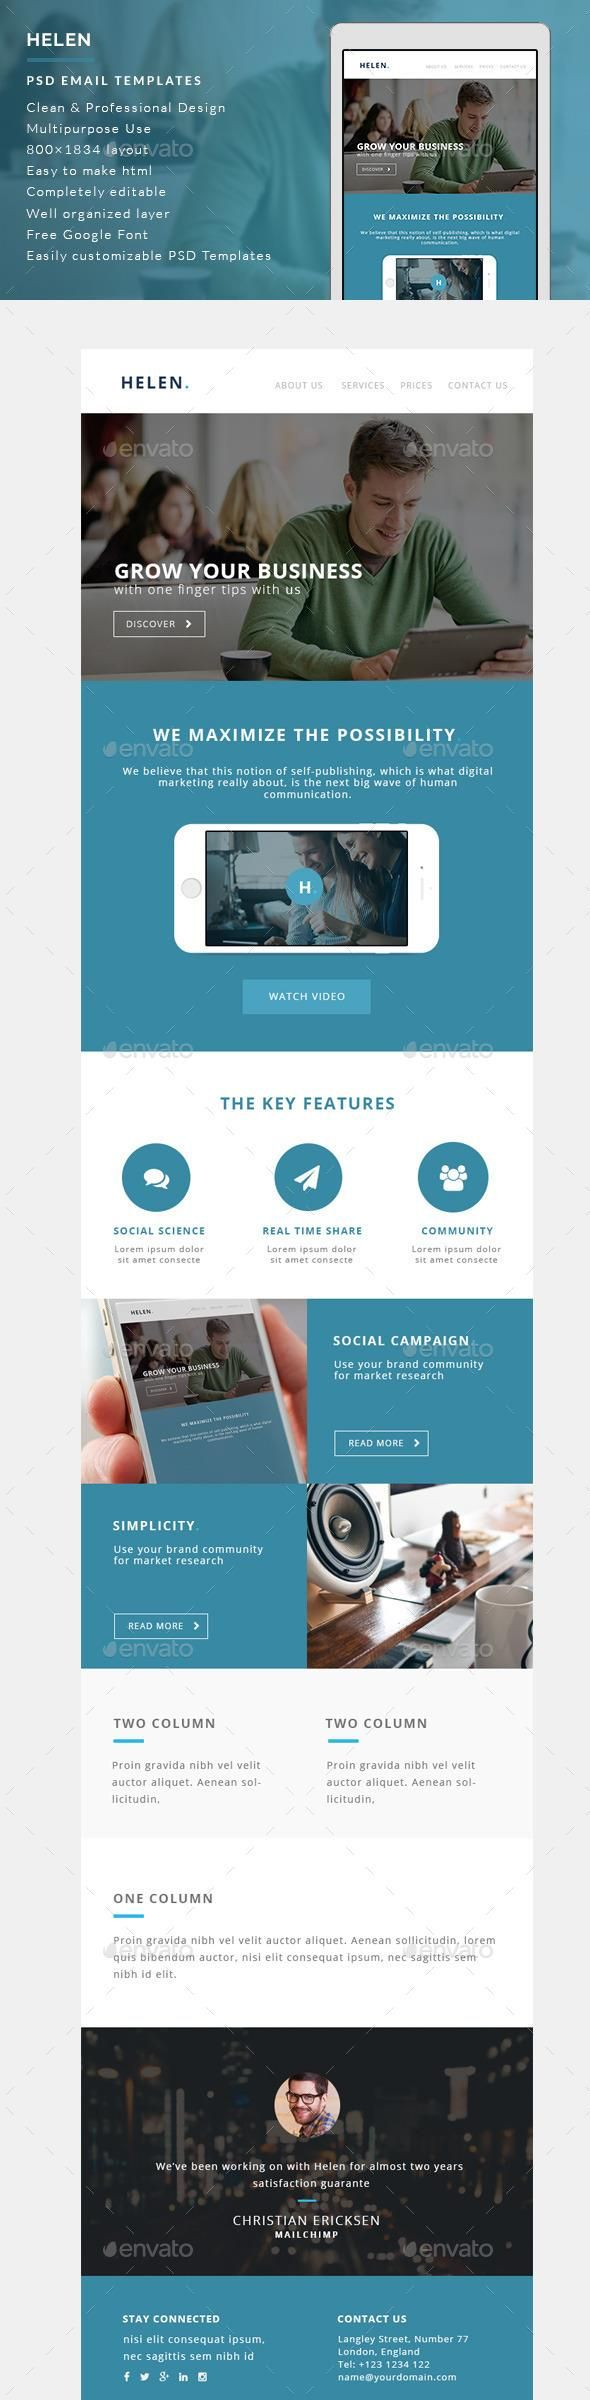 70 best Disney Email Template images on Pinterest | Email ...